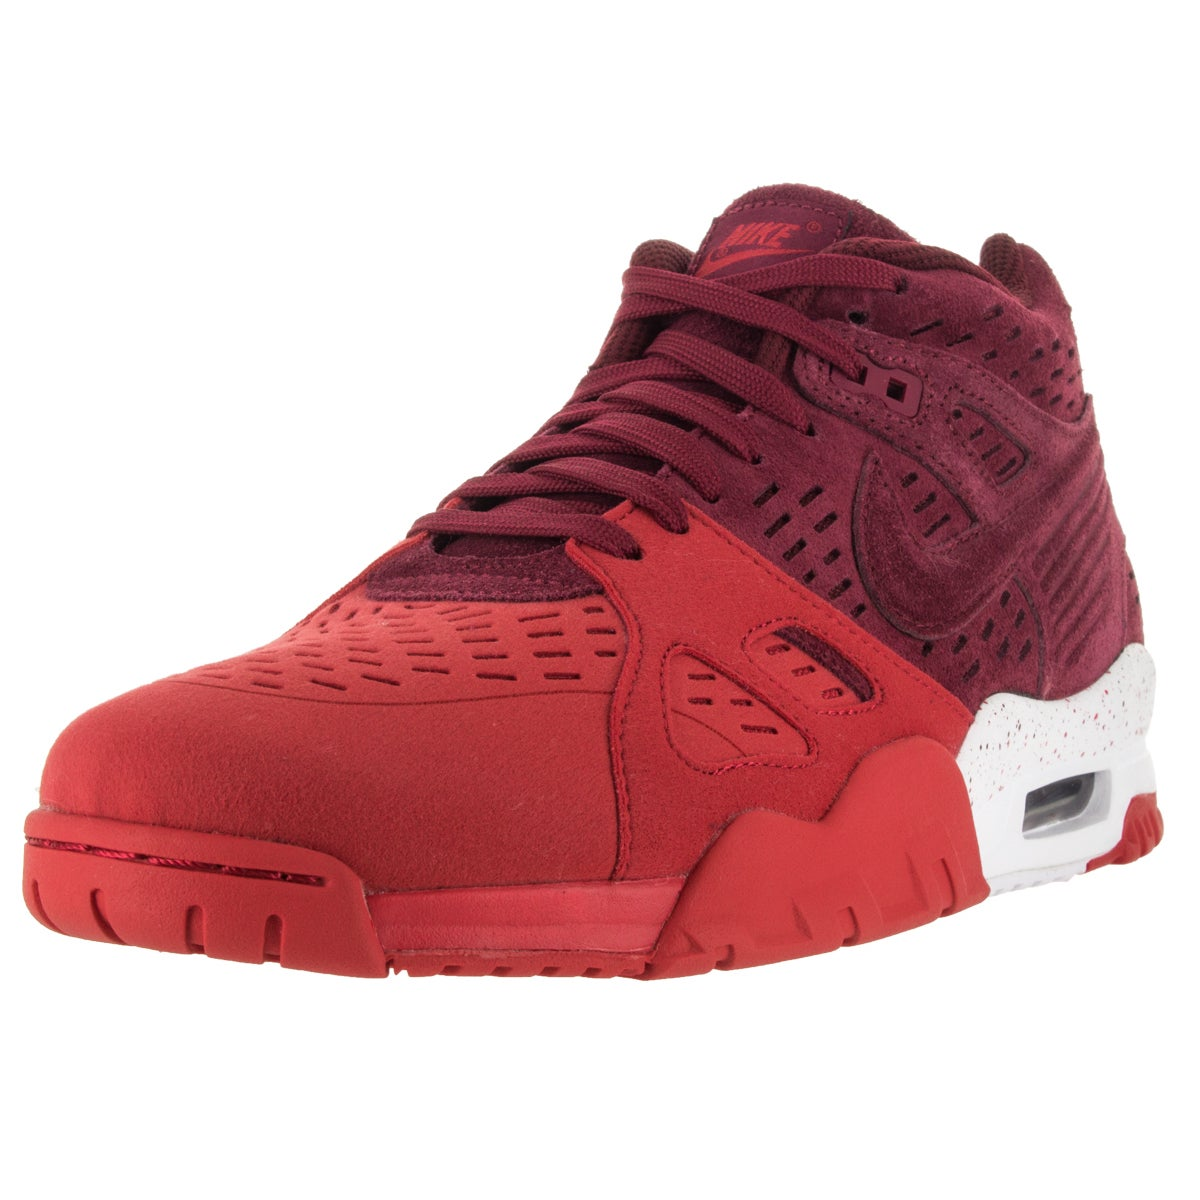 Nike Men s Air Trainer 3 Le Team Red University Red White Training Shoe 9243eb79d